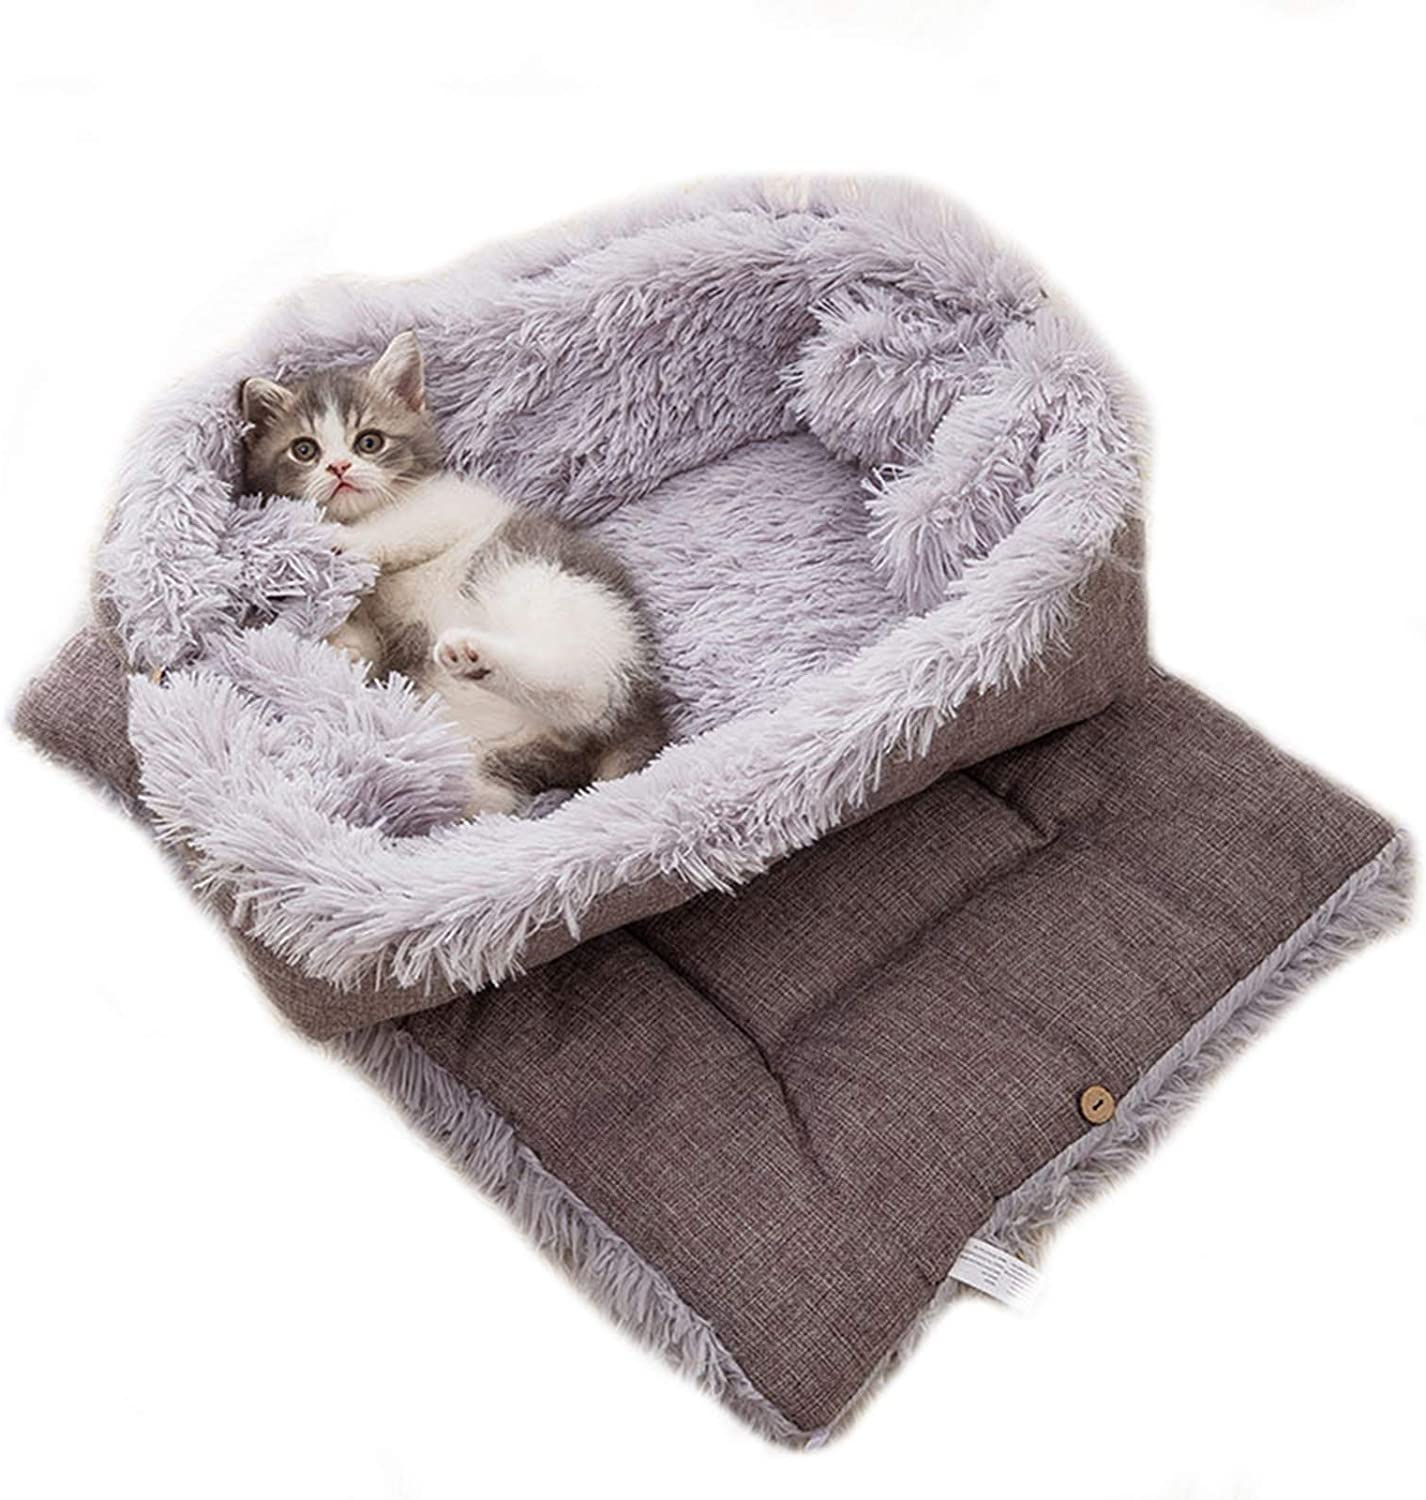 New products world's highest quality popular Cat Bed Winter Warm Nest Sleeping OFFicial mail order Foldable Bla Soft Pet